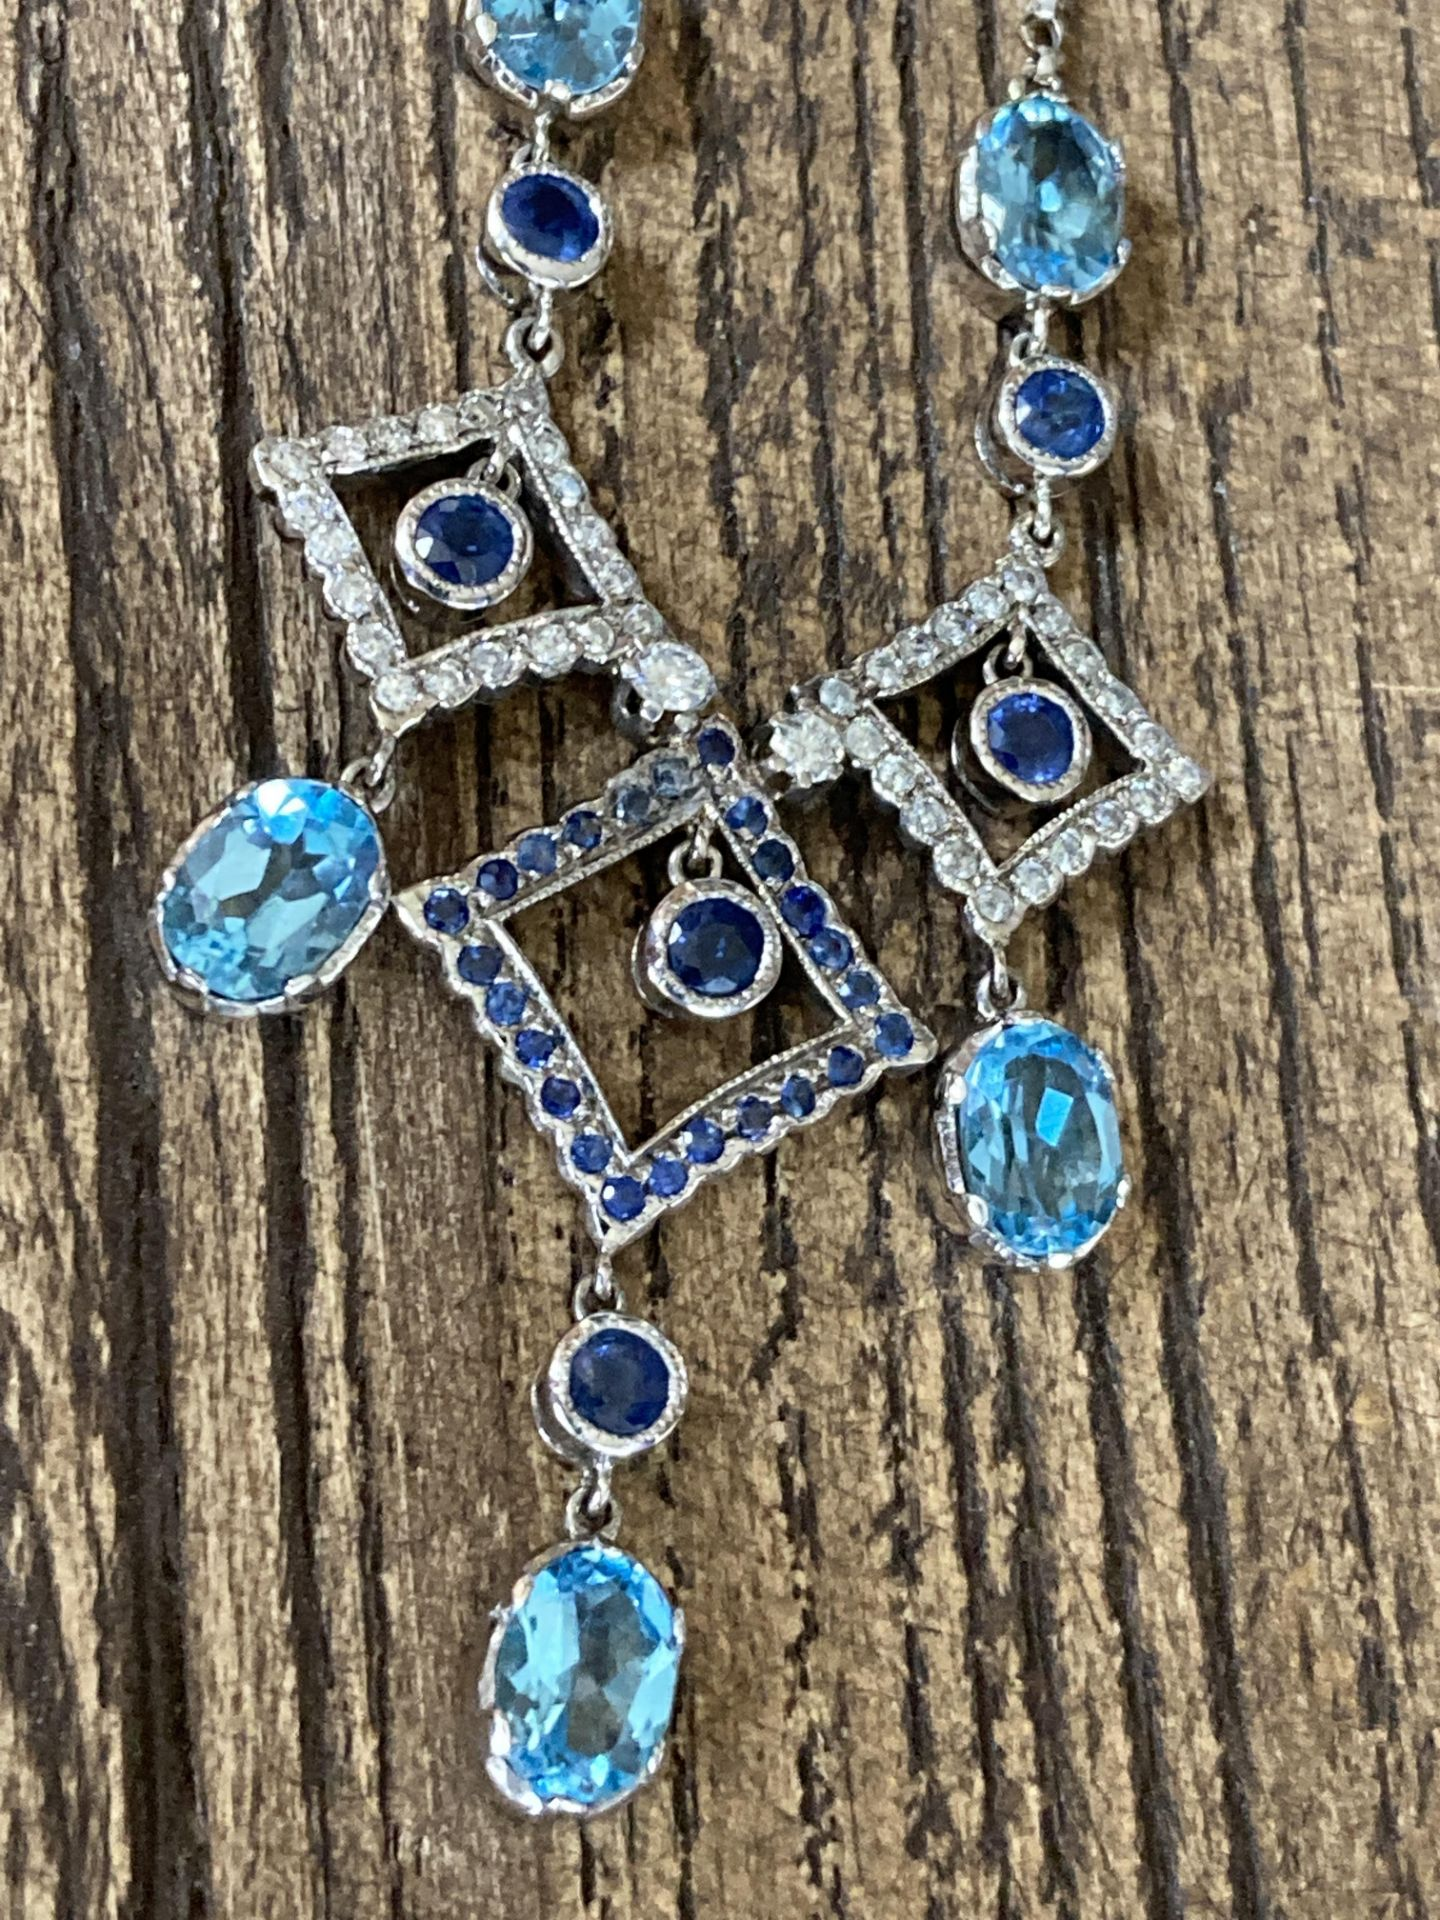 BLUE SAPPHIRE & TOPAZ 18CT WHITE GOLD NECKLACE - Image 4 of 5